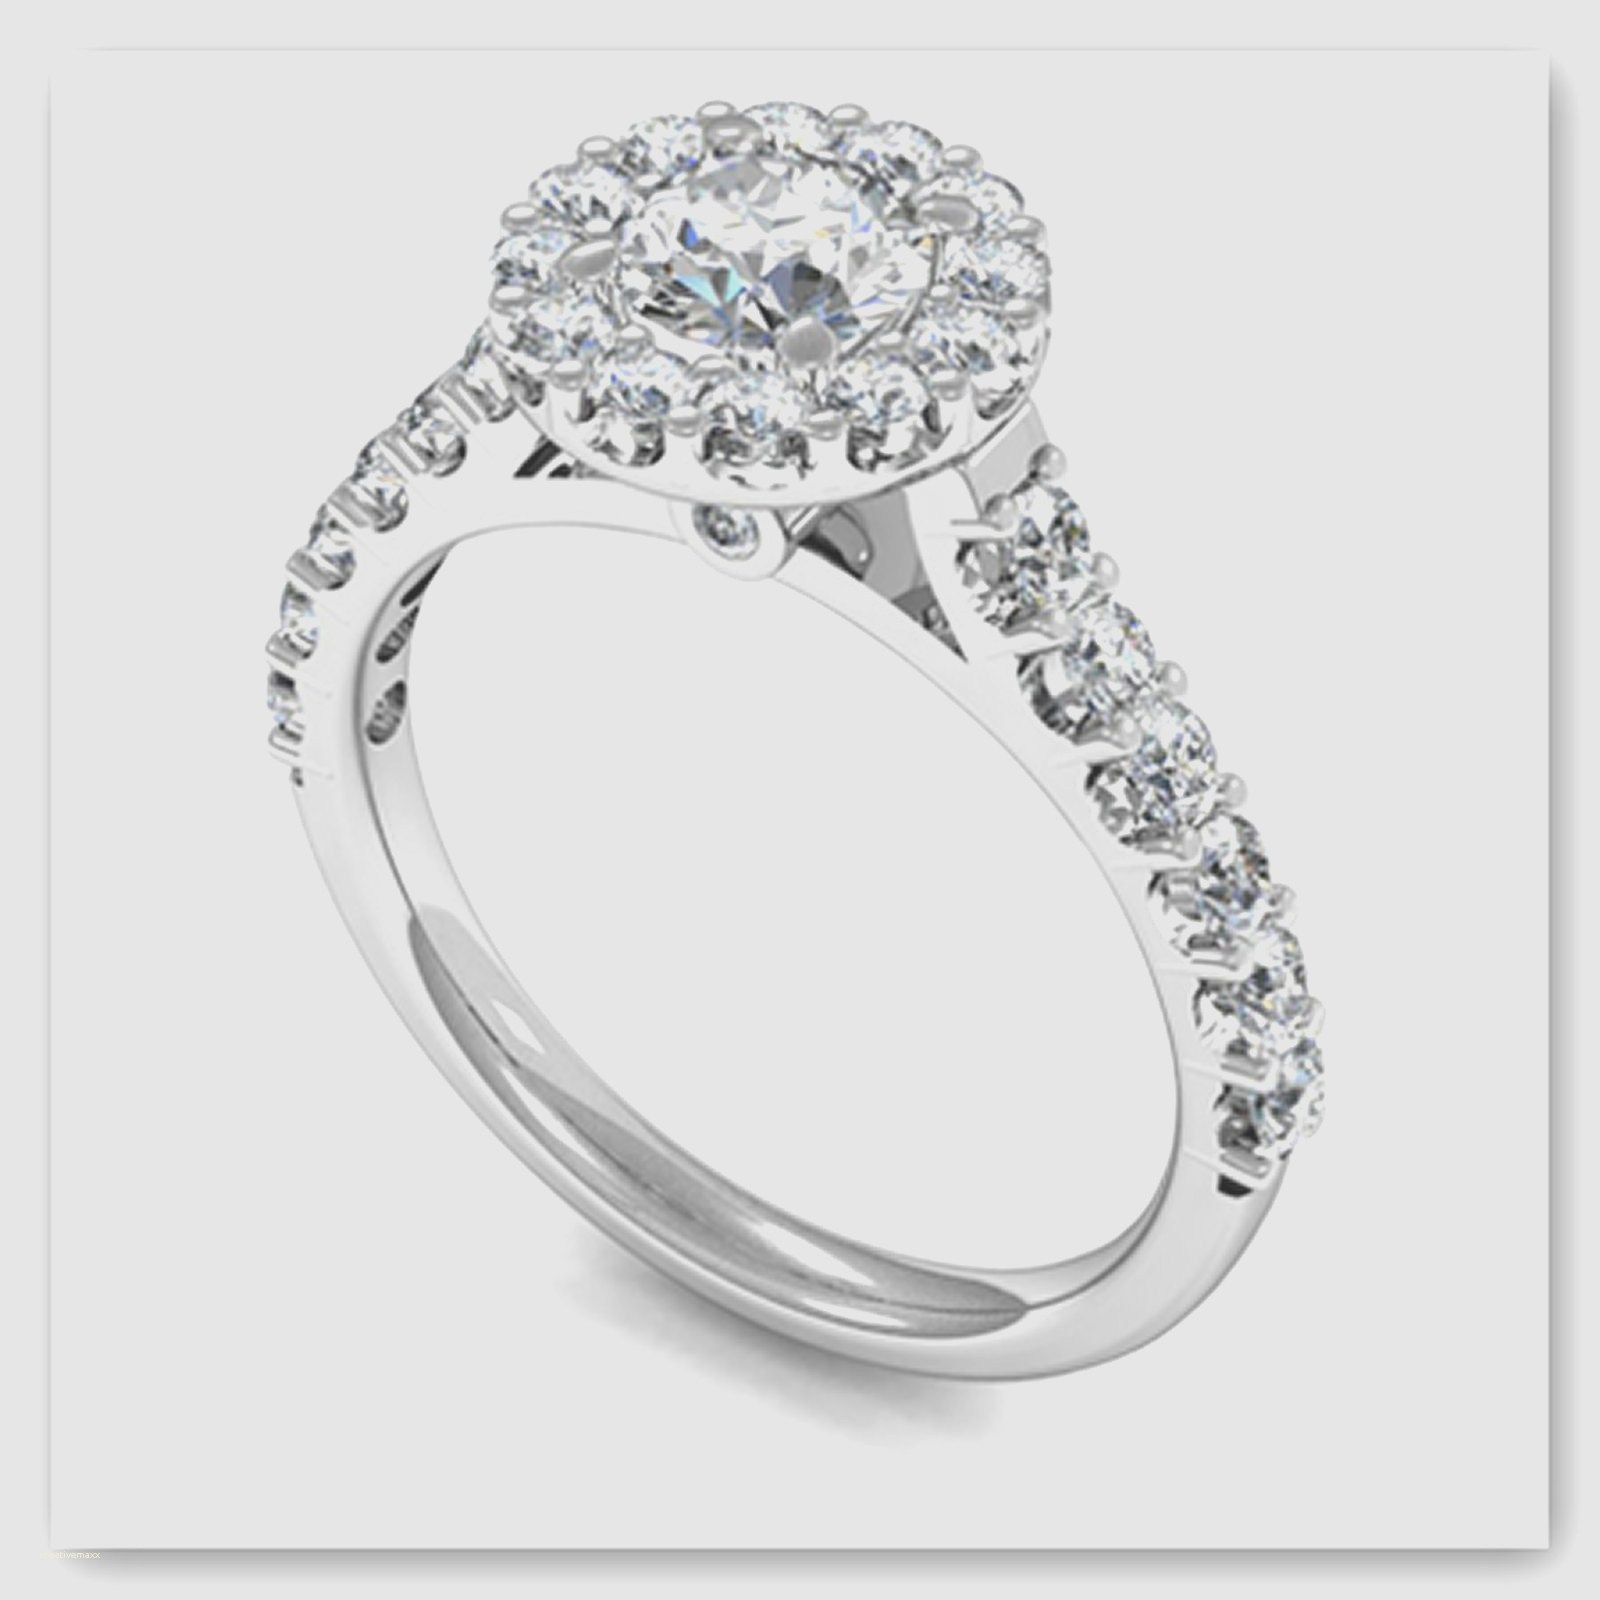 jewels diamond introducing quad stella wedding pin ring engagement pinterest rings